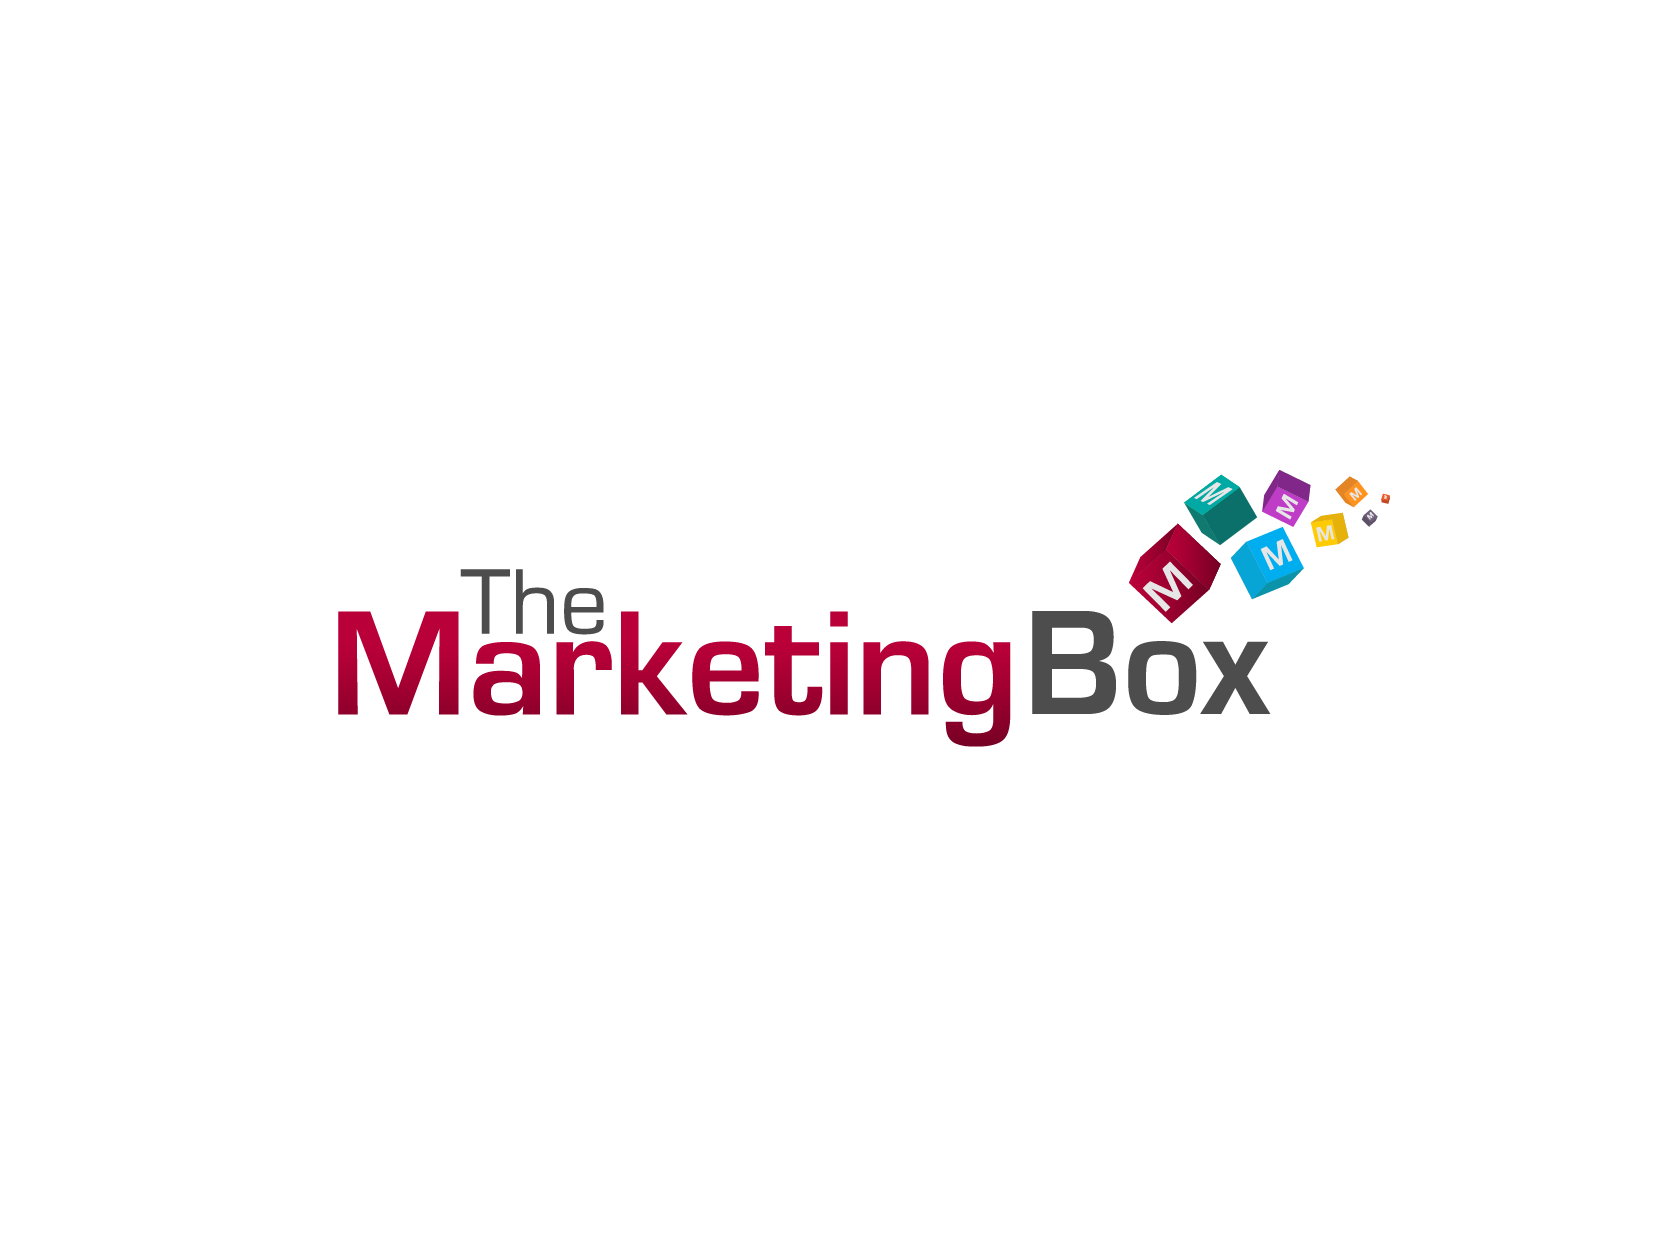 The Marketing Box needs a new logo